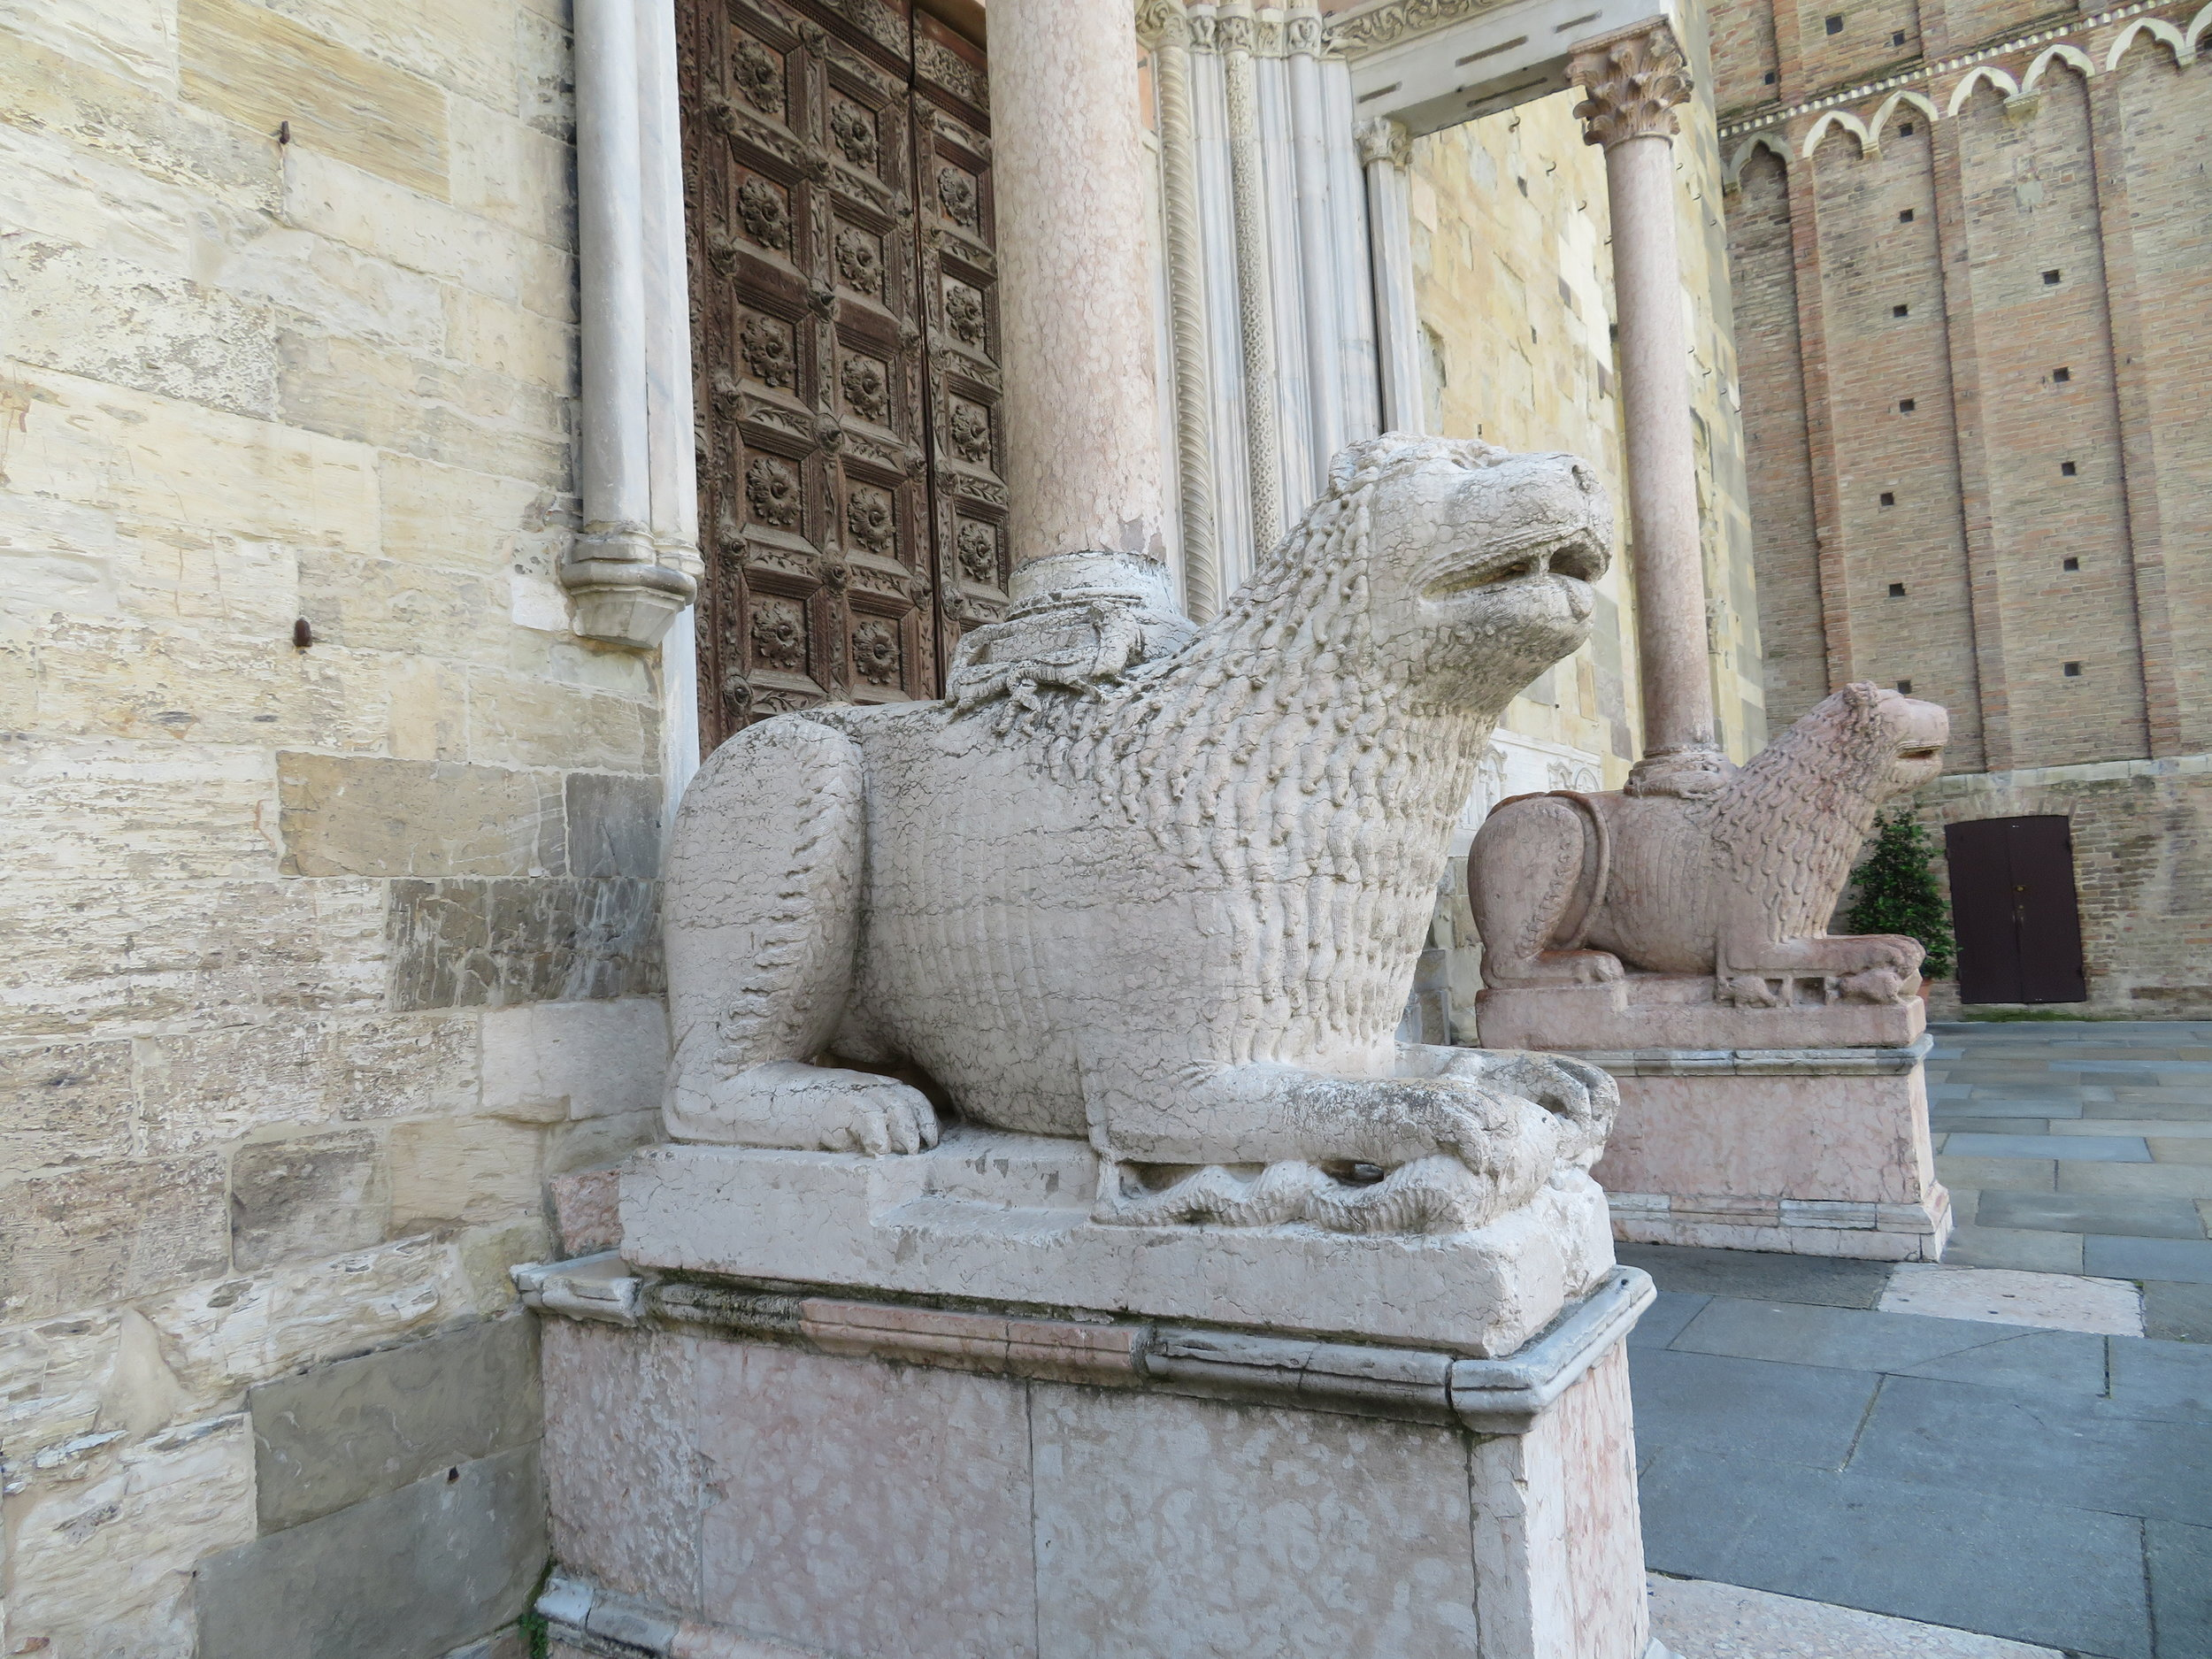 Two marble lions, sculpted by Giambono da Bissono in 1281, stand sentry at the entrance and are symbolic of this Cathedral.